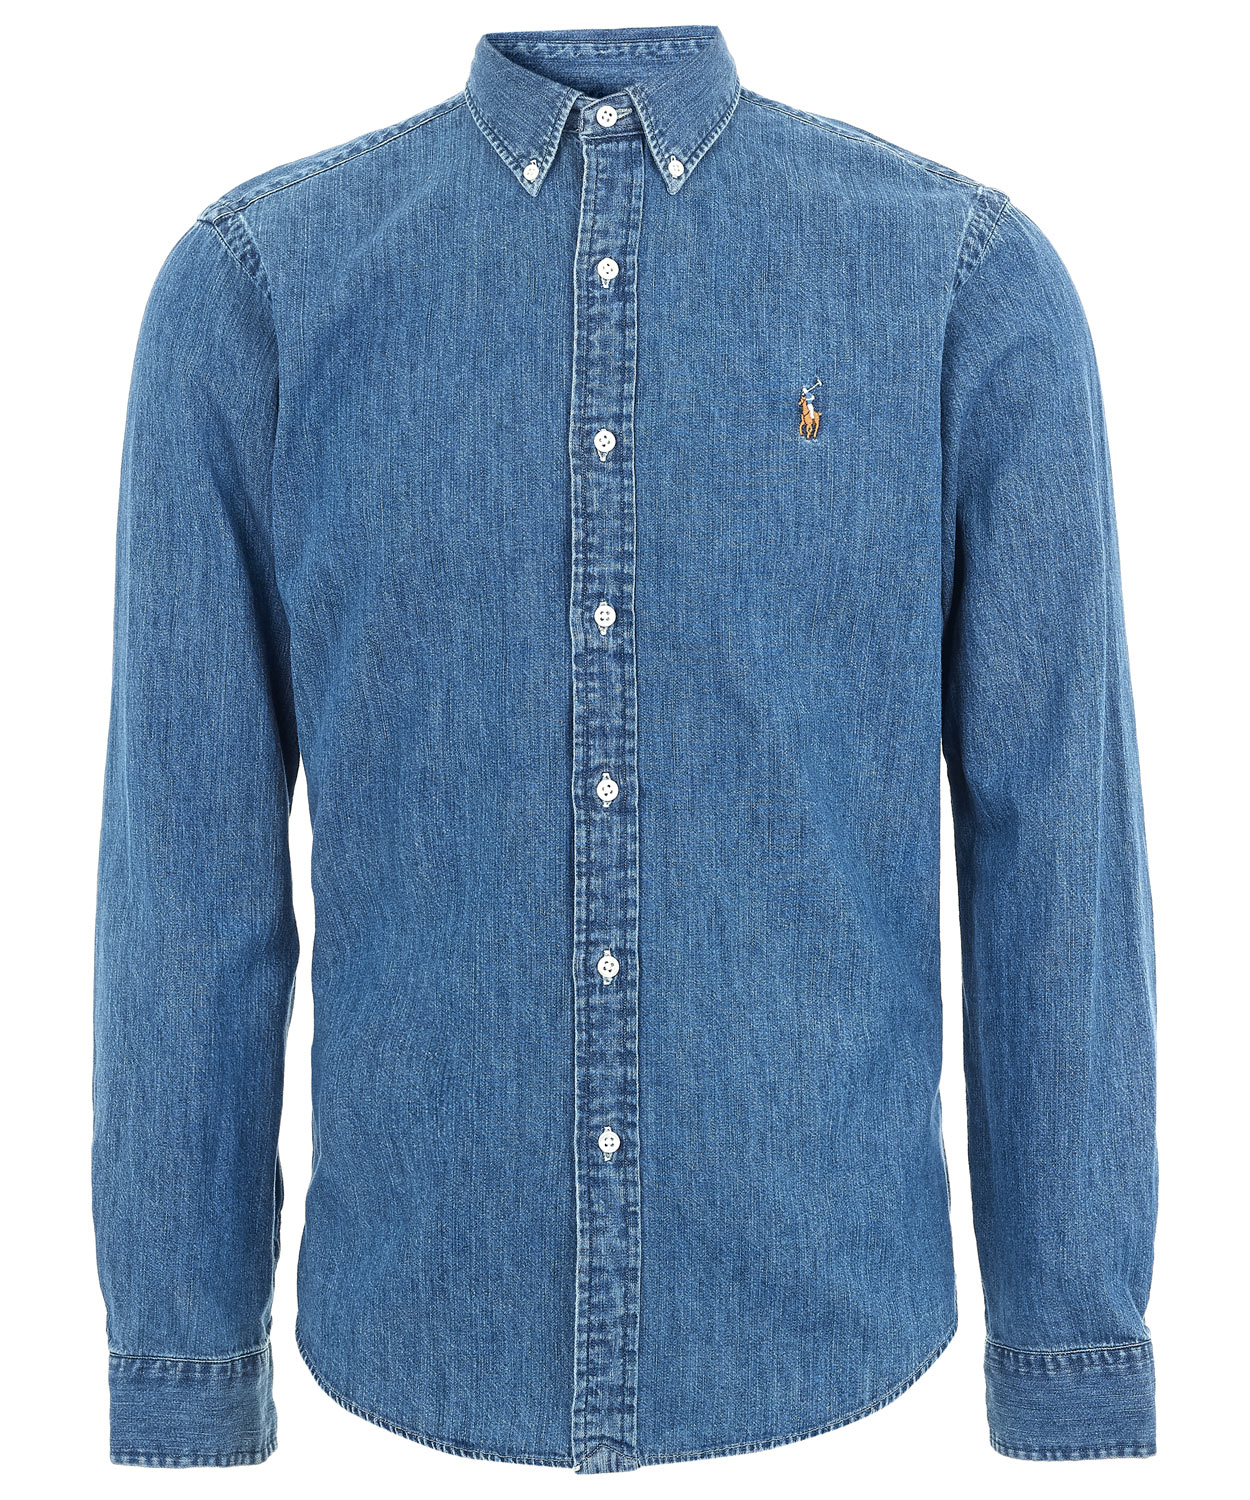 Lyst polo ralph lauren blue denim button down shirt in for Polo shirt and jeans